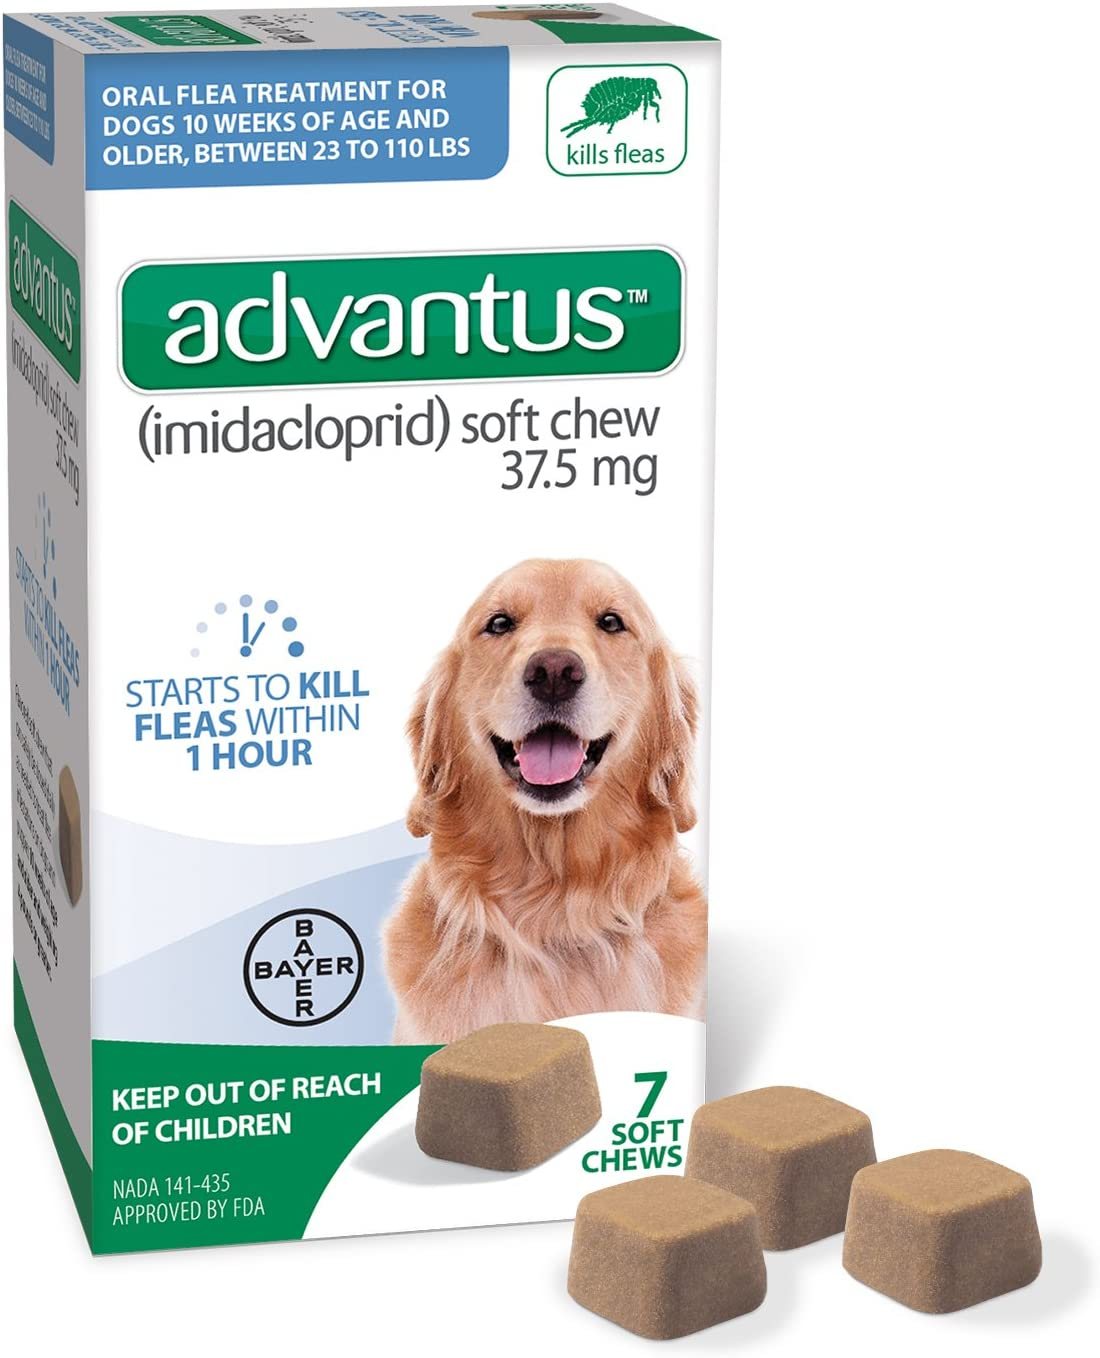 Amazon Com Bayer Animal Health Advantus Imidacloprid Oral Dog Flea Treatment Soft Flea Chews For Dogs 23 110 Lbs 7 Doses Pet Supplies